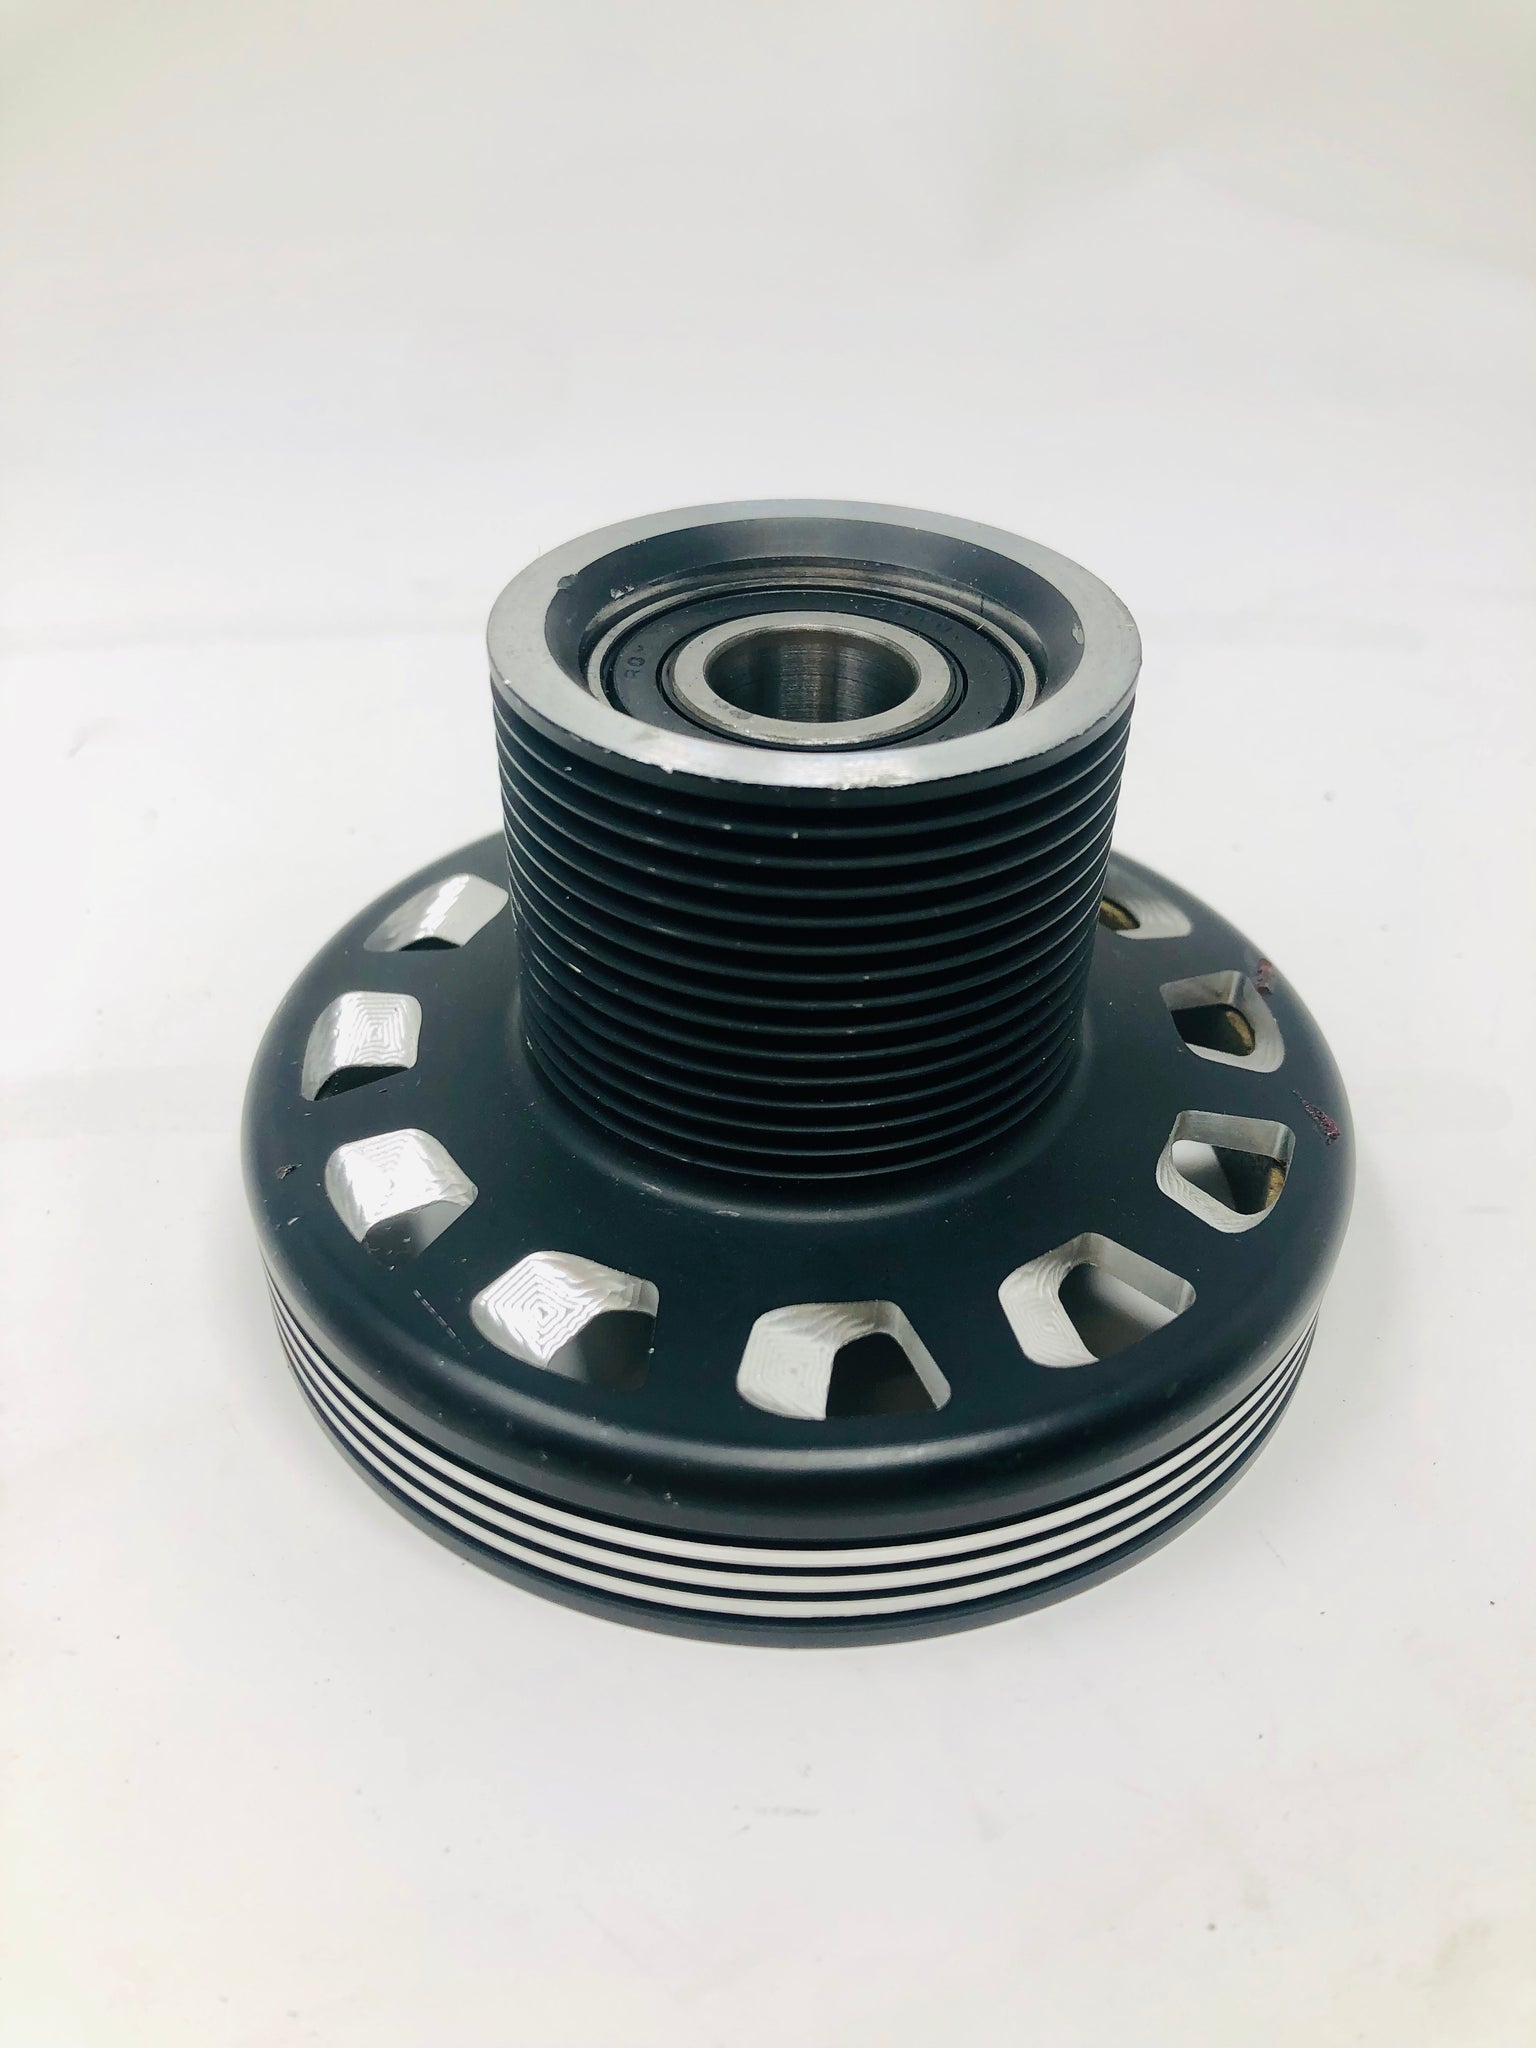 Clutch Housing for Air Conception Nitro 200